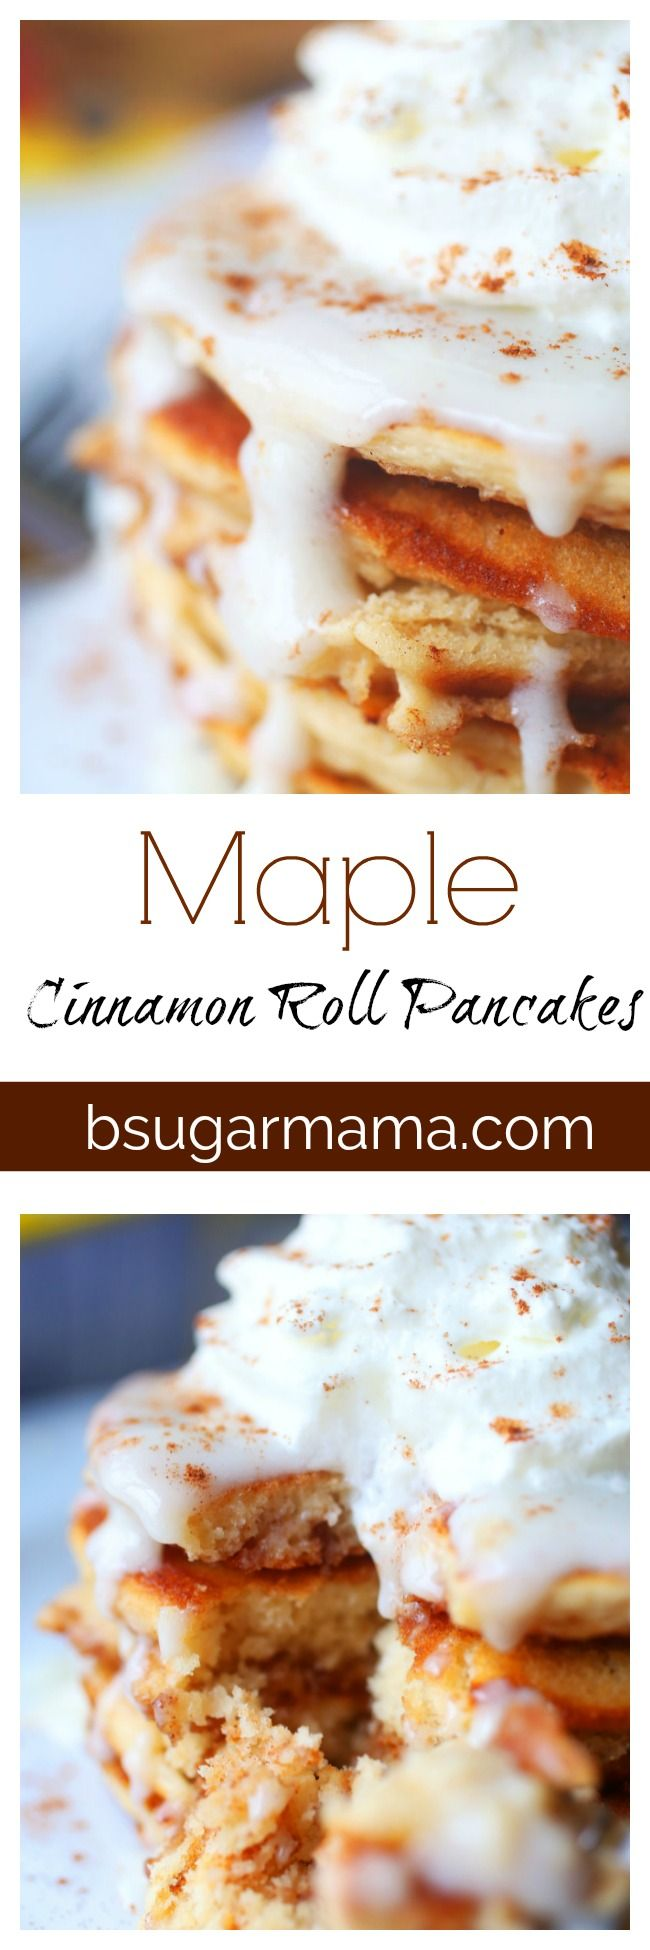 Maple & Cinnamon Roll Pancakes: These pancakes will make you never want to eat pancakes another way. Use Bisquick pancake mix to make these delicious pancakes! Buy Bisquick today at your local @Meijerstores #pancakestar #ad #pancakes #breakfast